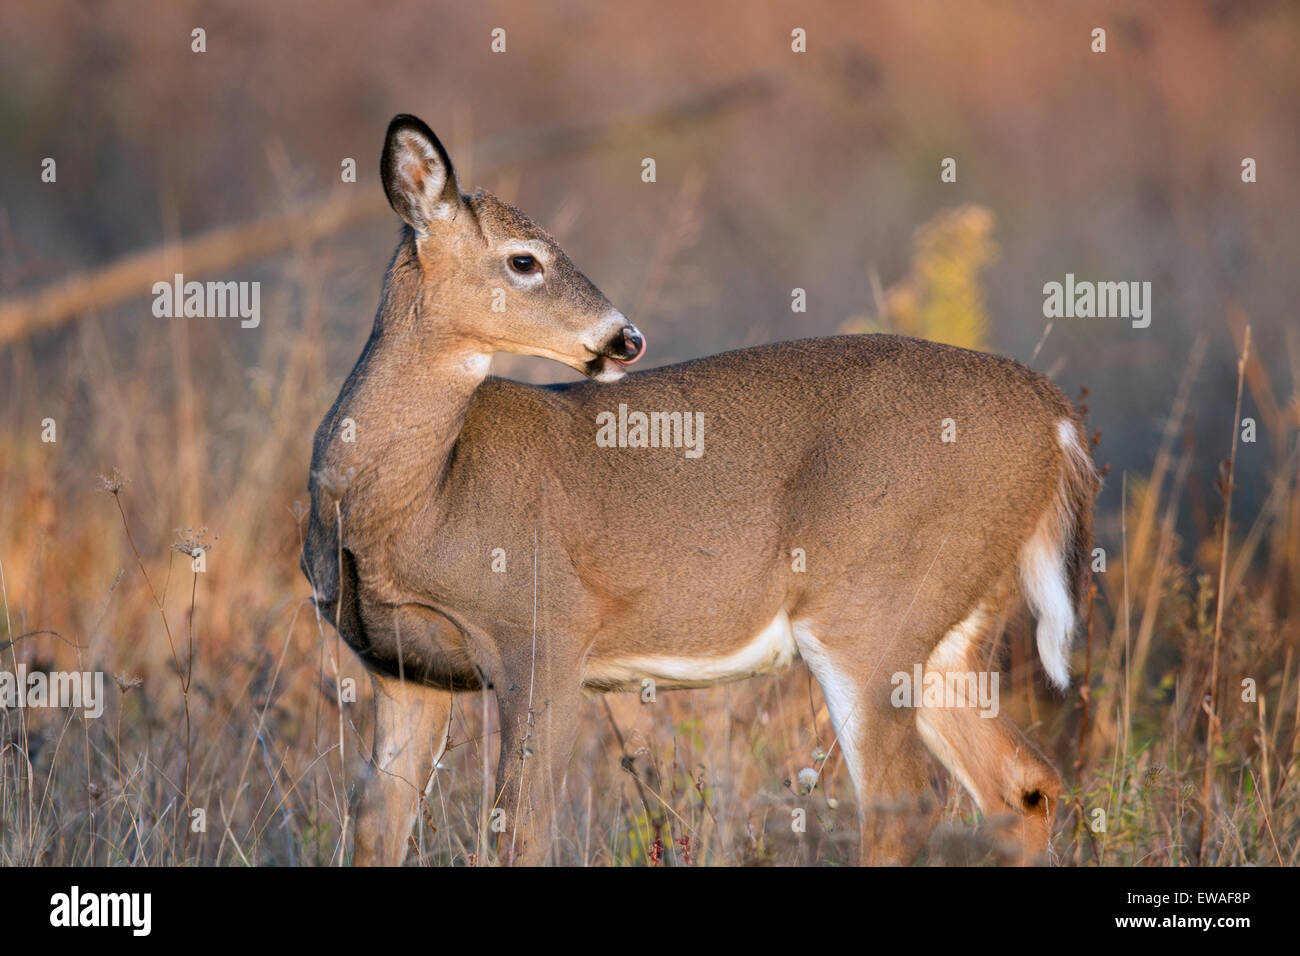 Whitetail doe deer in field looking over her back, licking her nose. - Stock Image